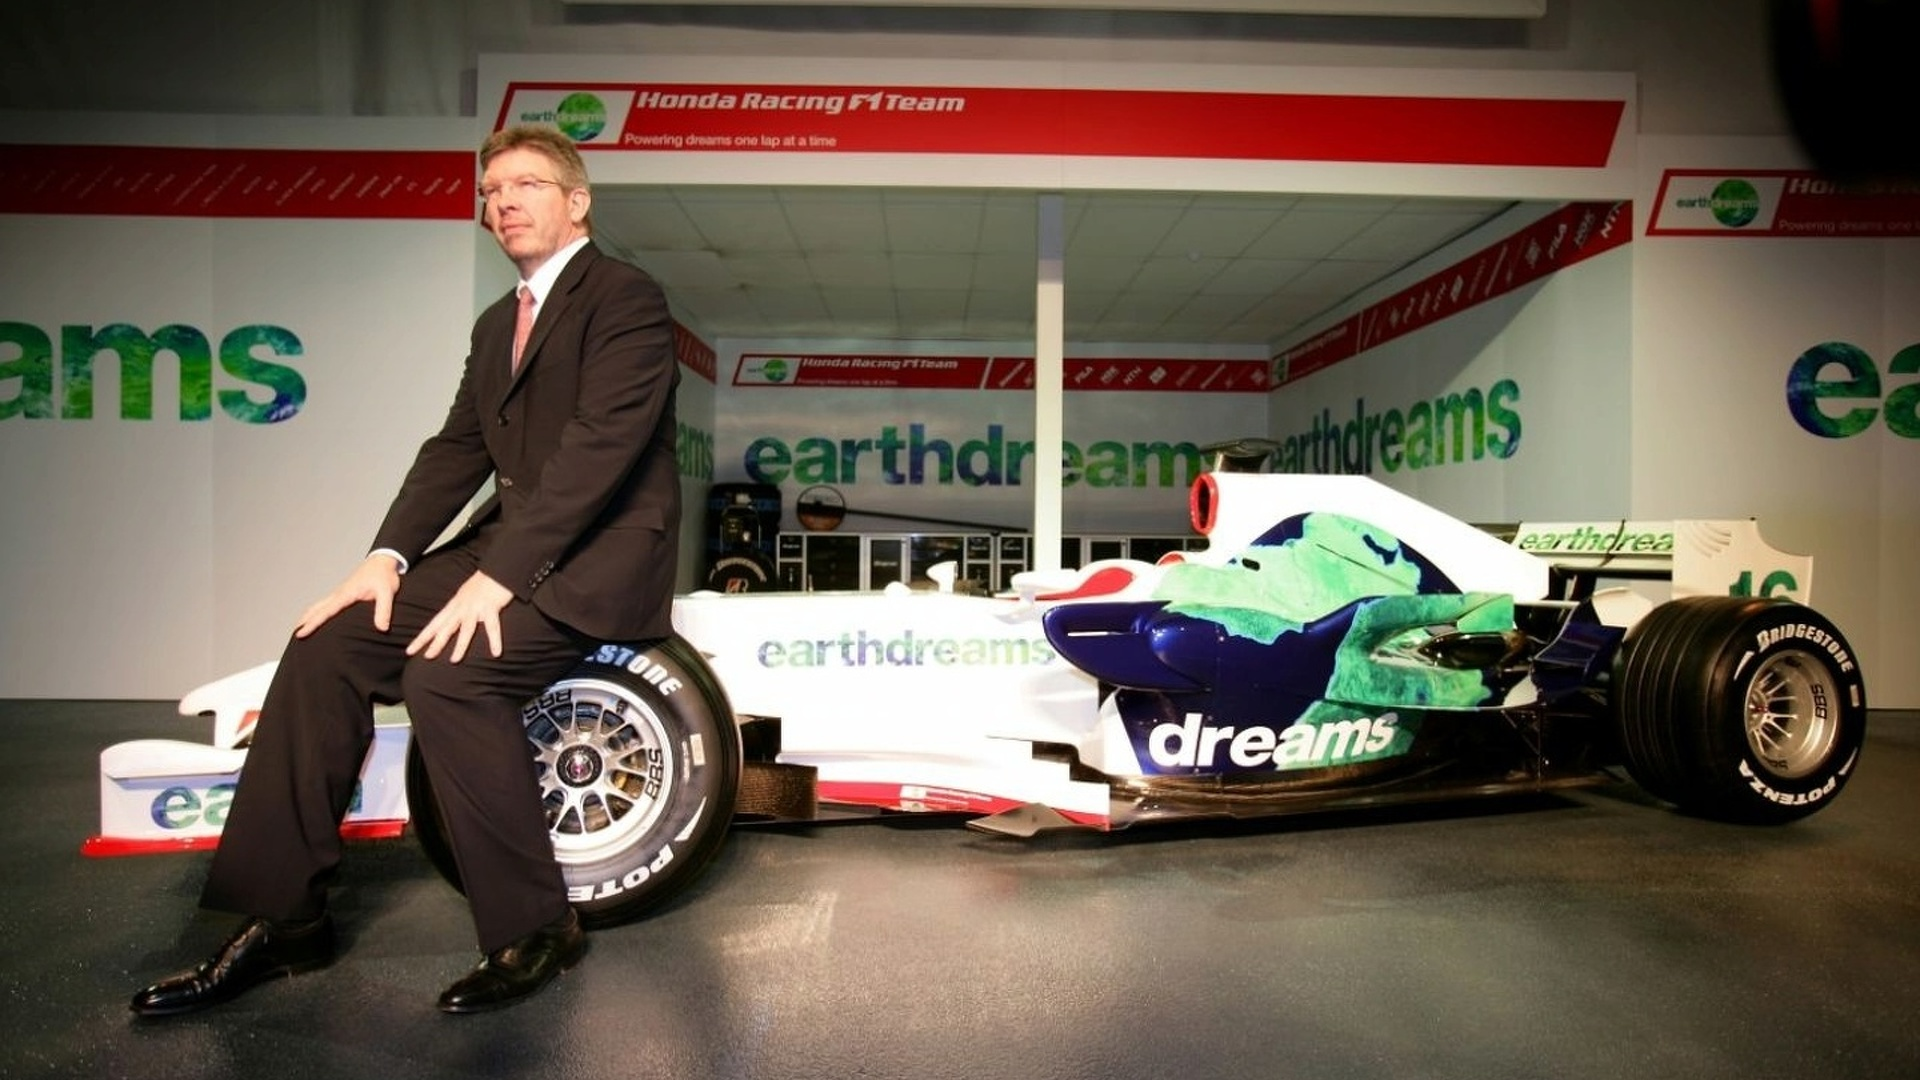 Honda Announces Sale of the Honda Racing F1 Team